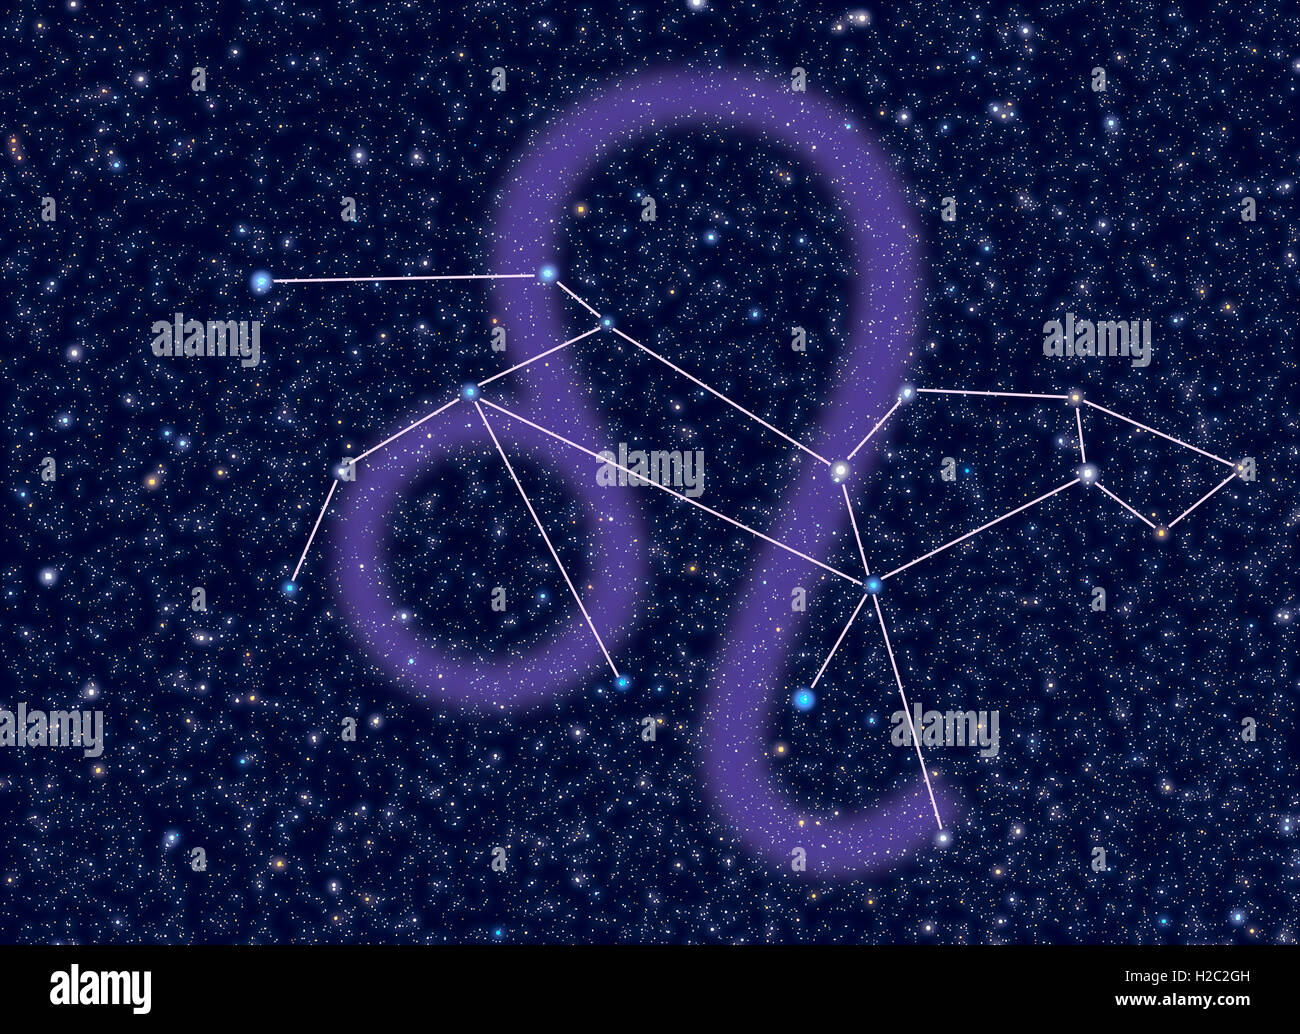 Leo (The Lion) Zodiac constellation. Leo sign corresponds to ...